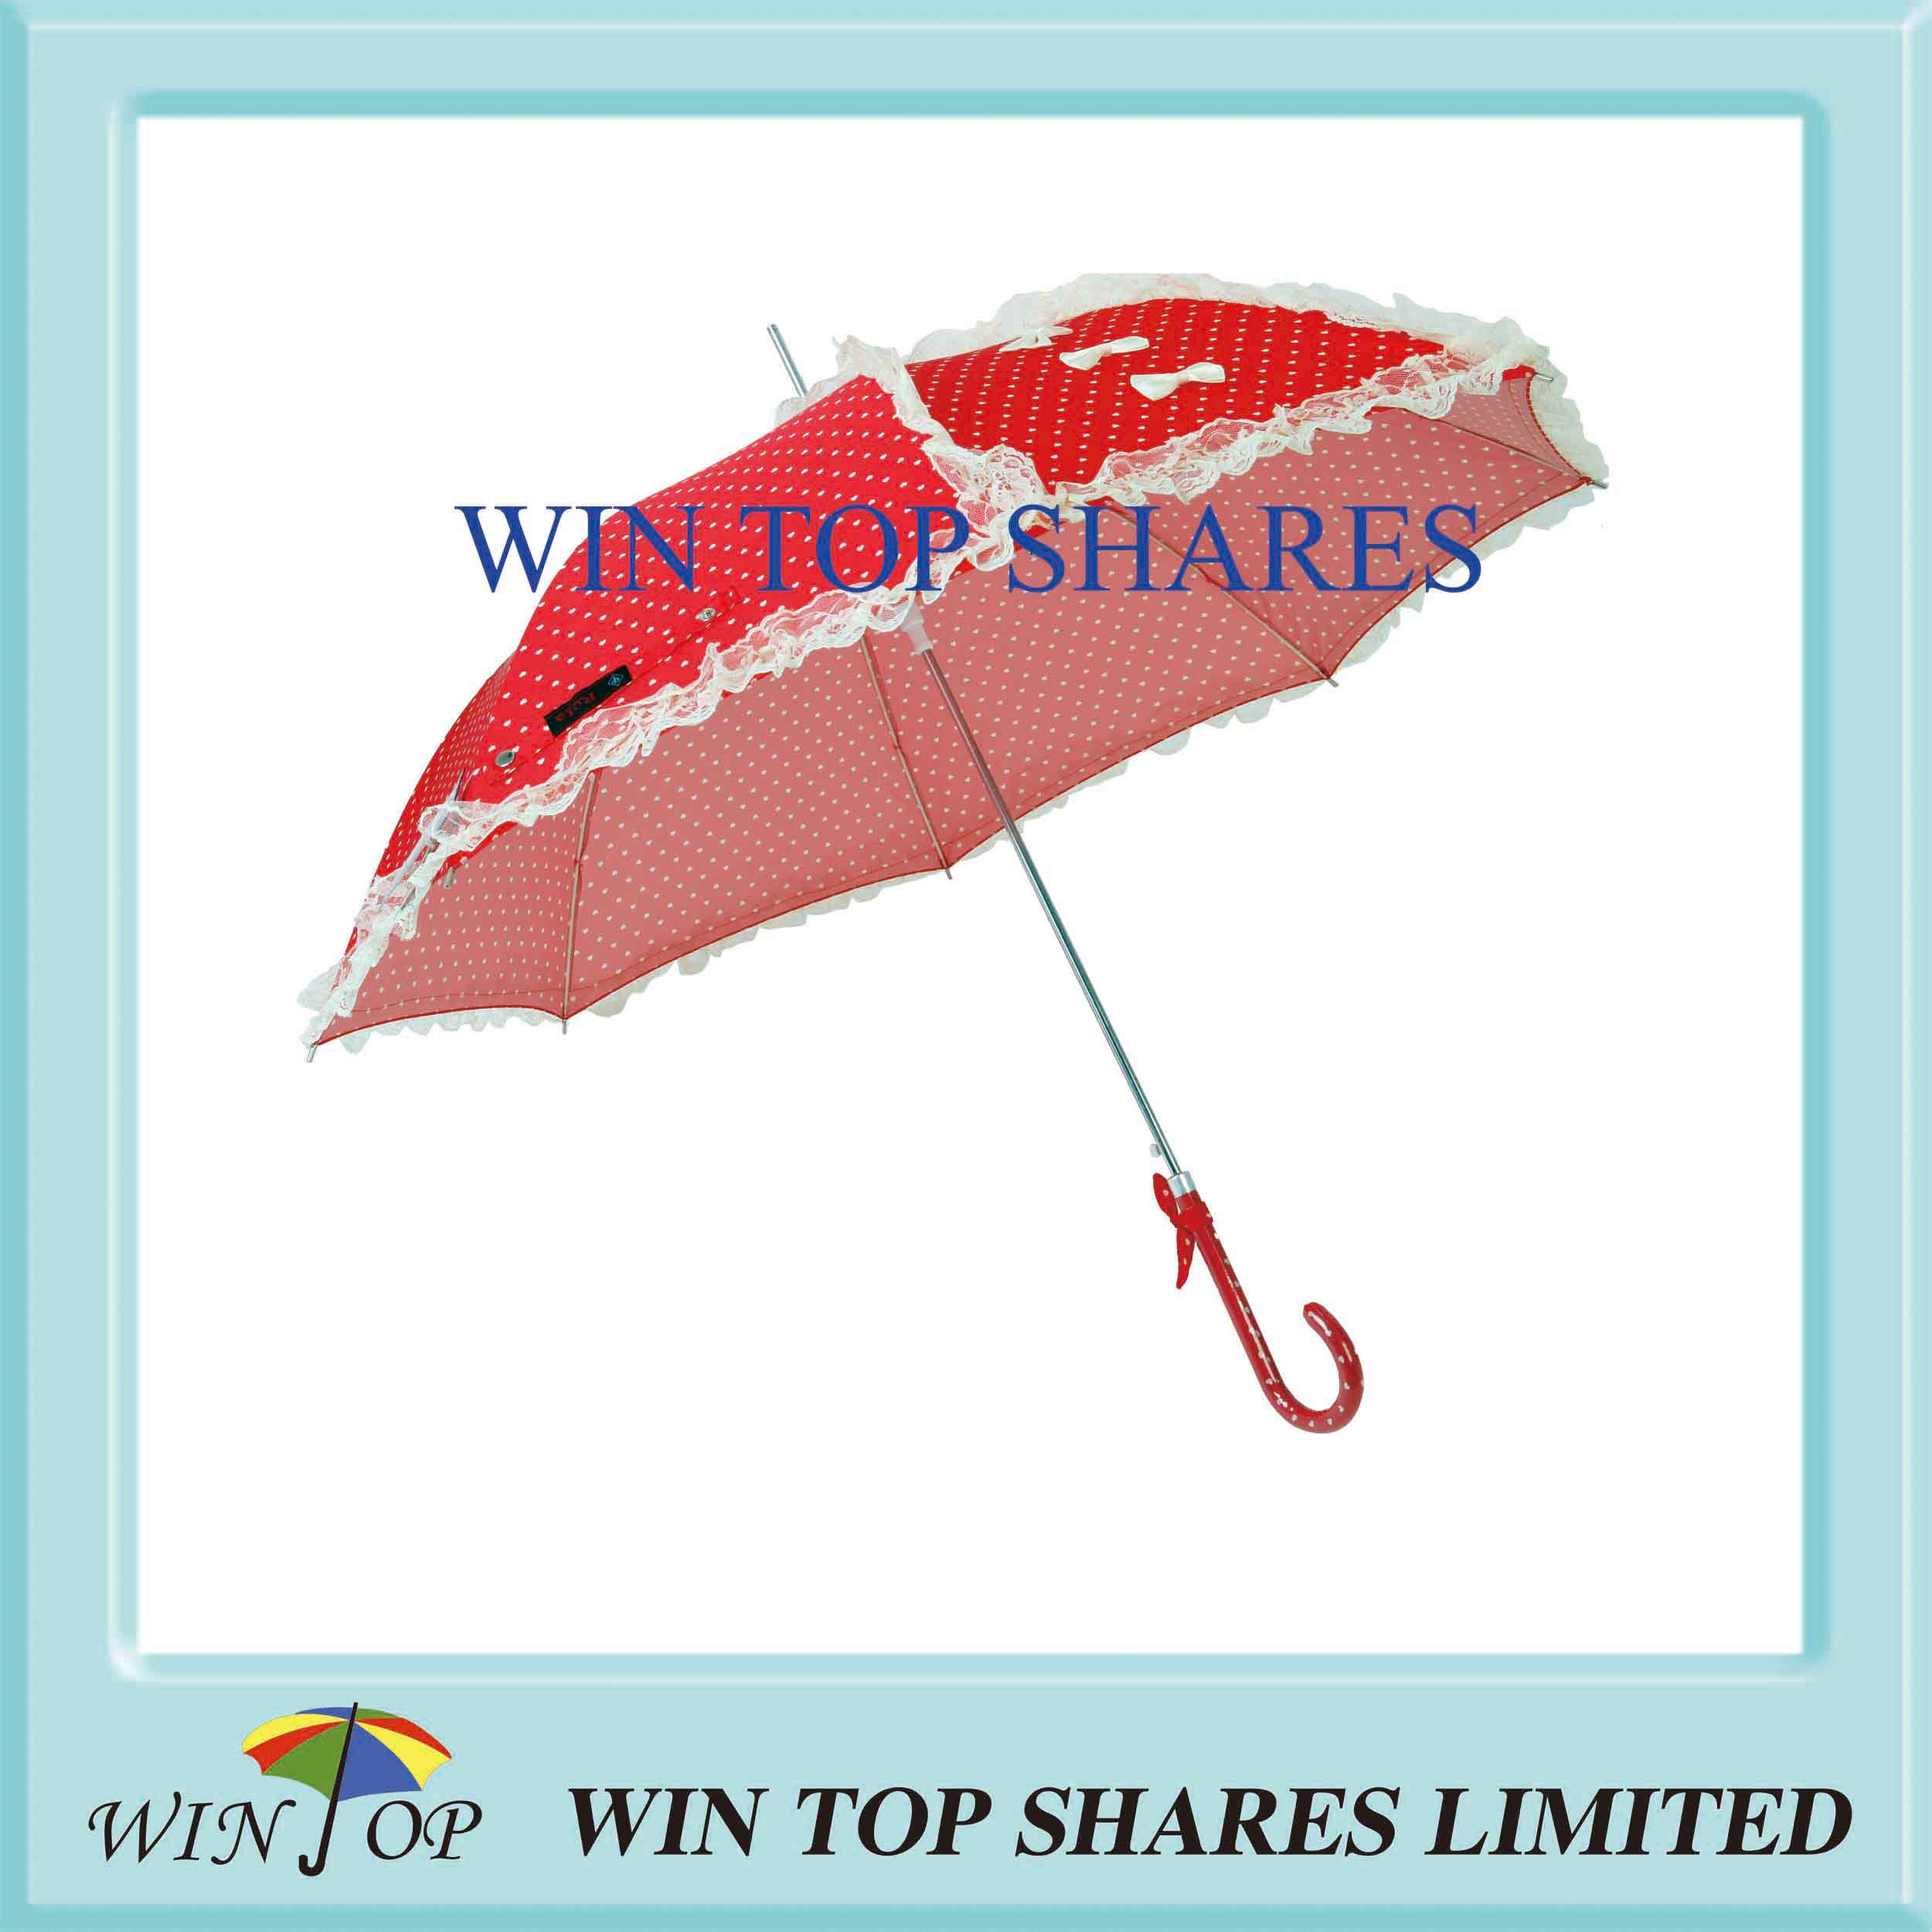 Red Auto Stick DOT Print Queen Umbrella with Lace